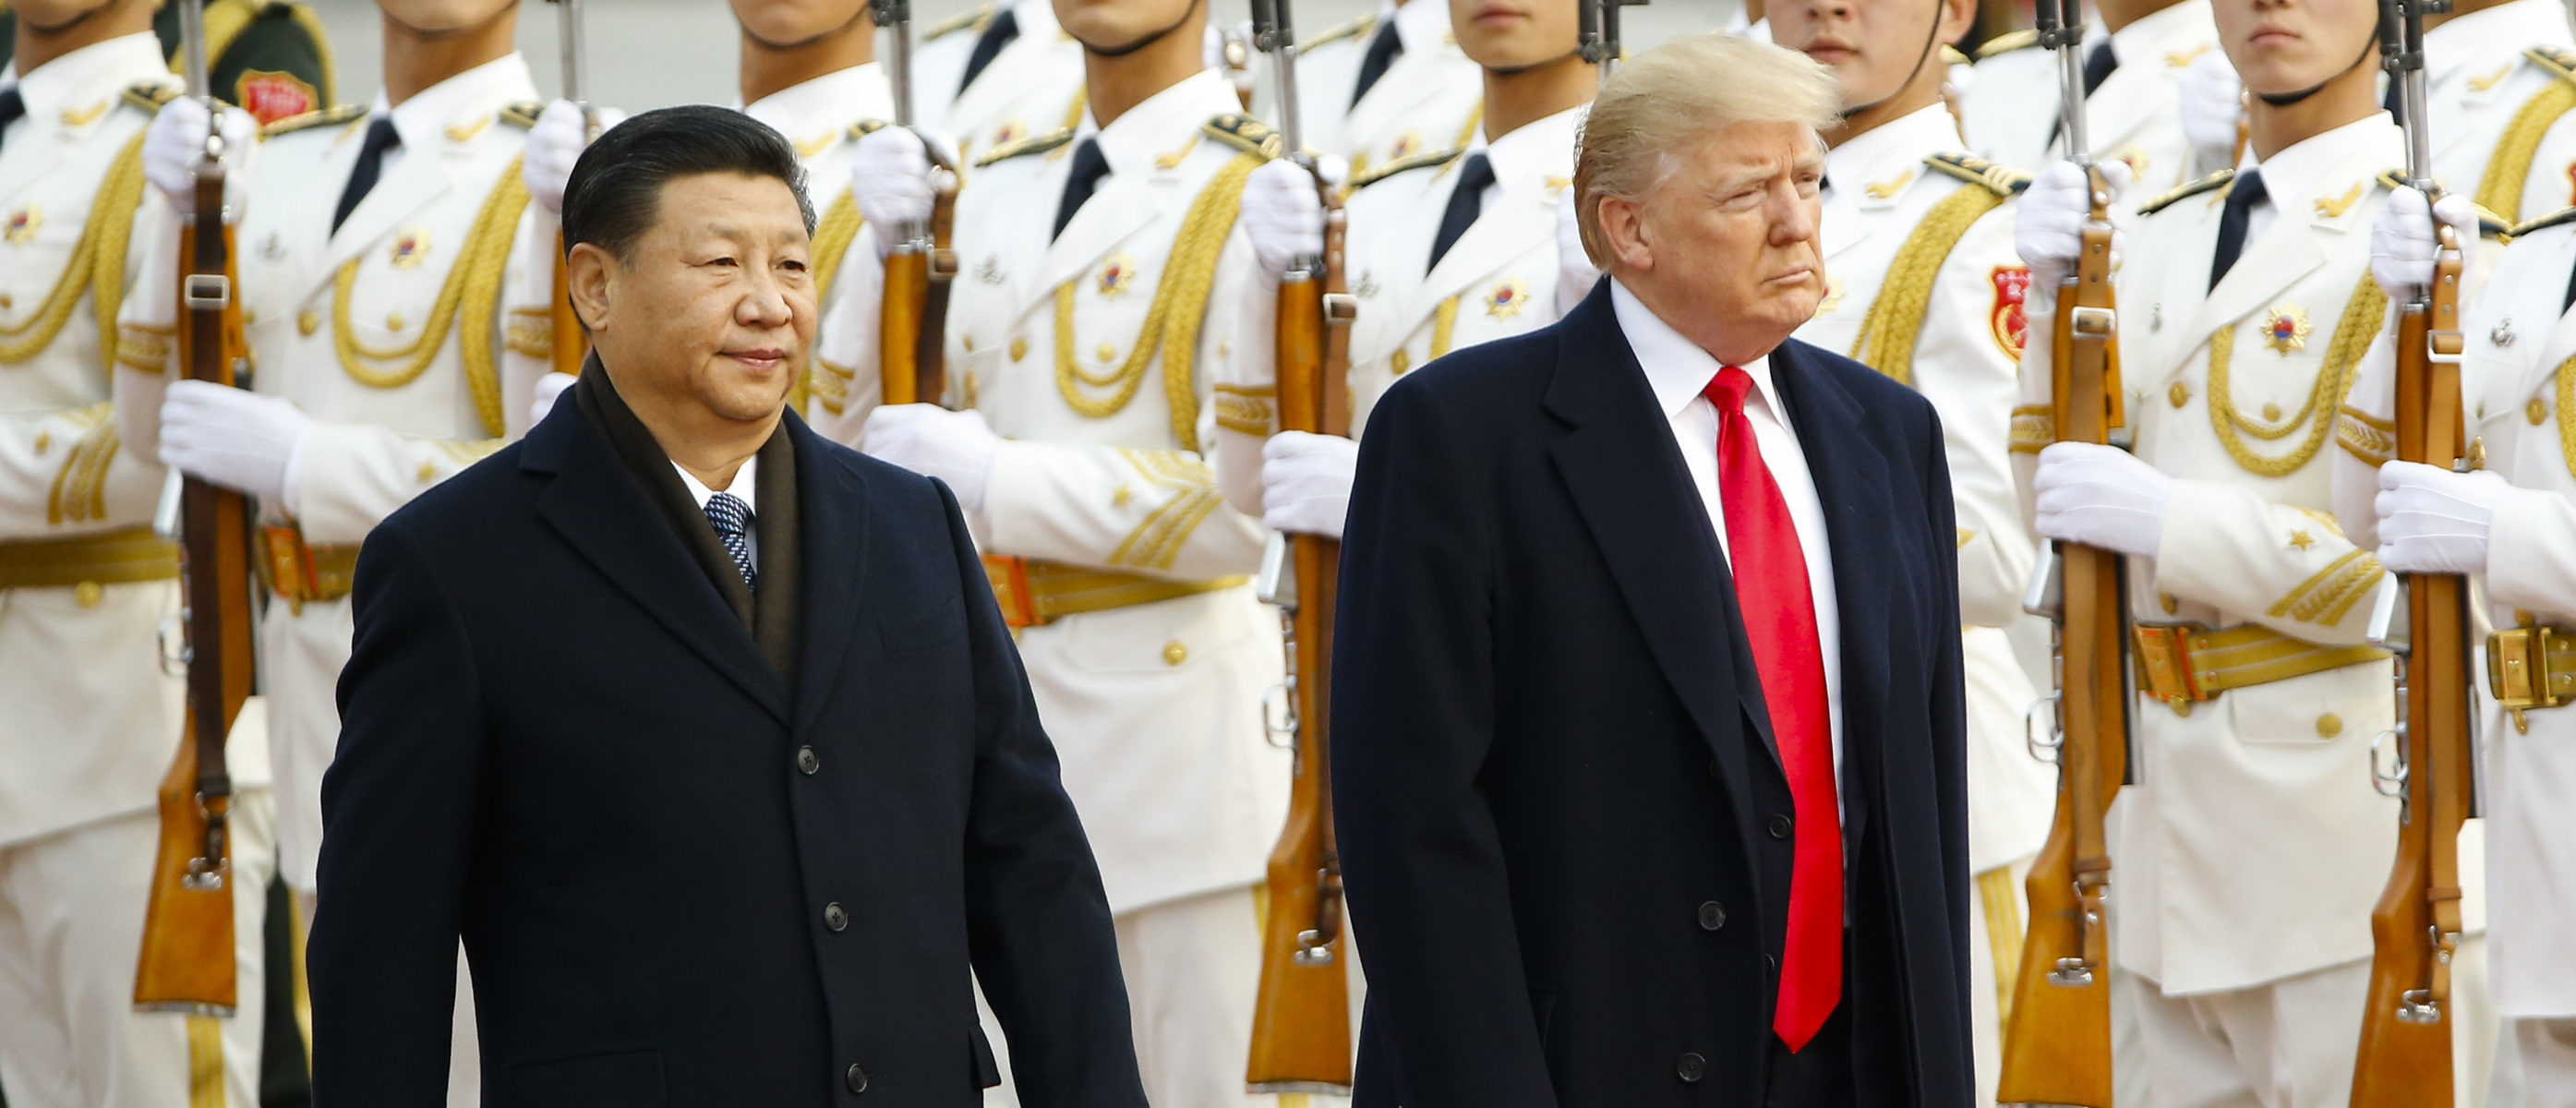 BEIJING, CHINA - NOVEMBER 9: U.S. President Donald Trump takes part in a welcoming ceremony with China's President Xi Jinping on November 9, 2017 in Beijing, China. Trump is on a 10-day trip to Asia. (Photo by Thomas Peter-Pool/Getty Images)